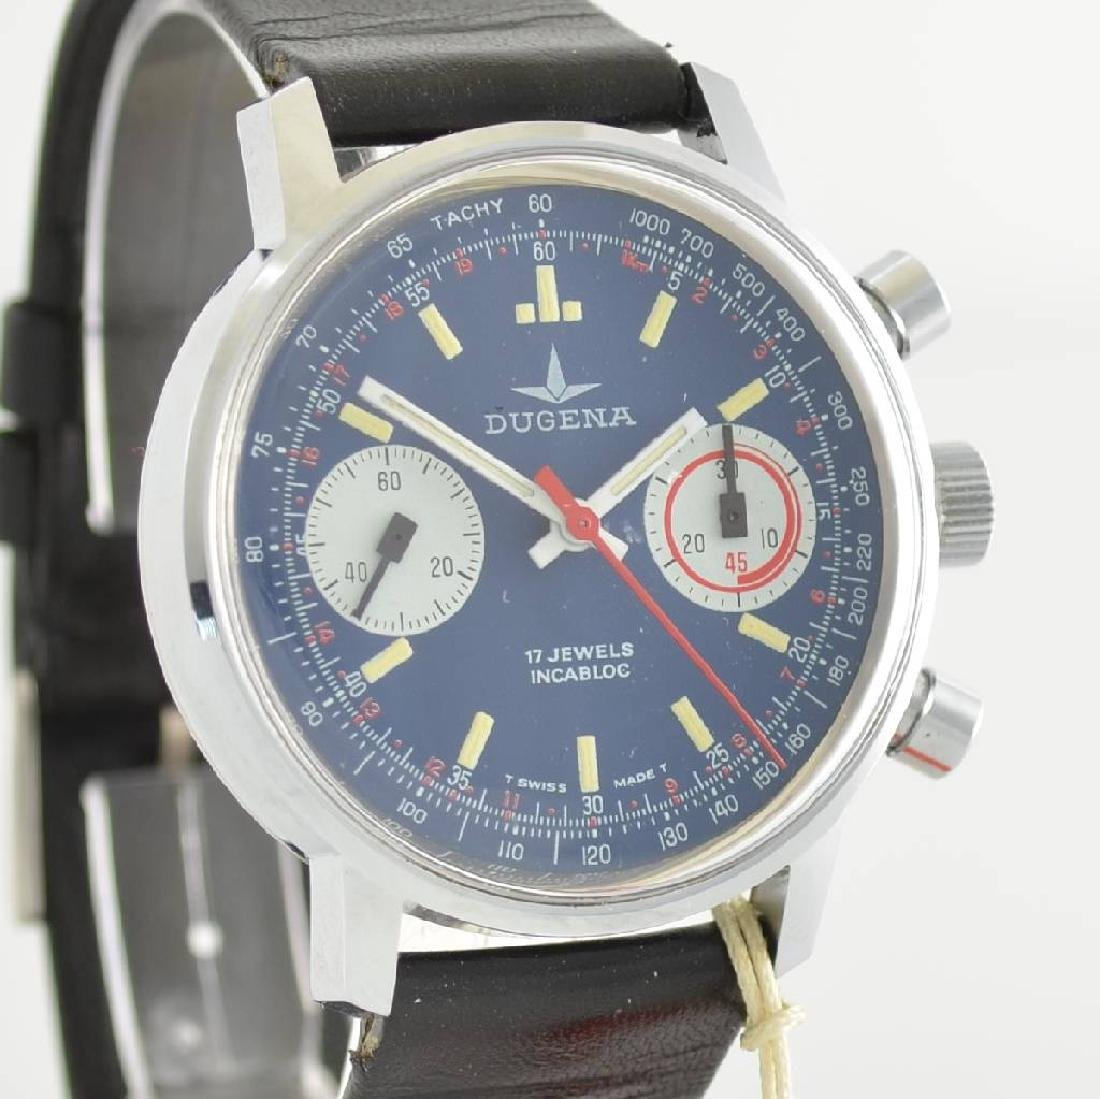 DUGENA unworn gents wristwatch with chronograph - 6